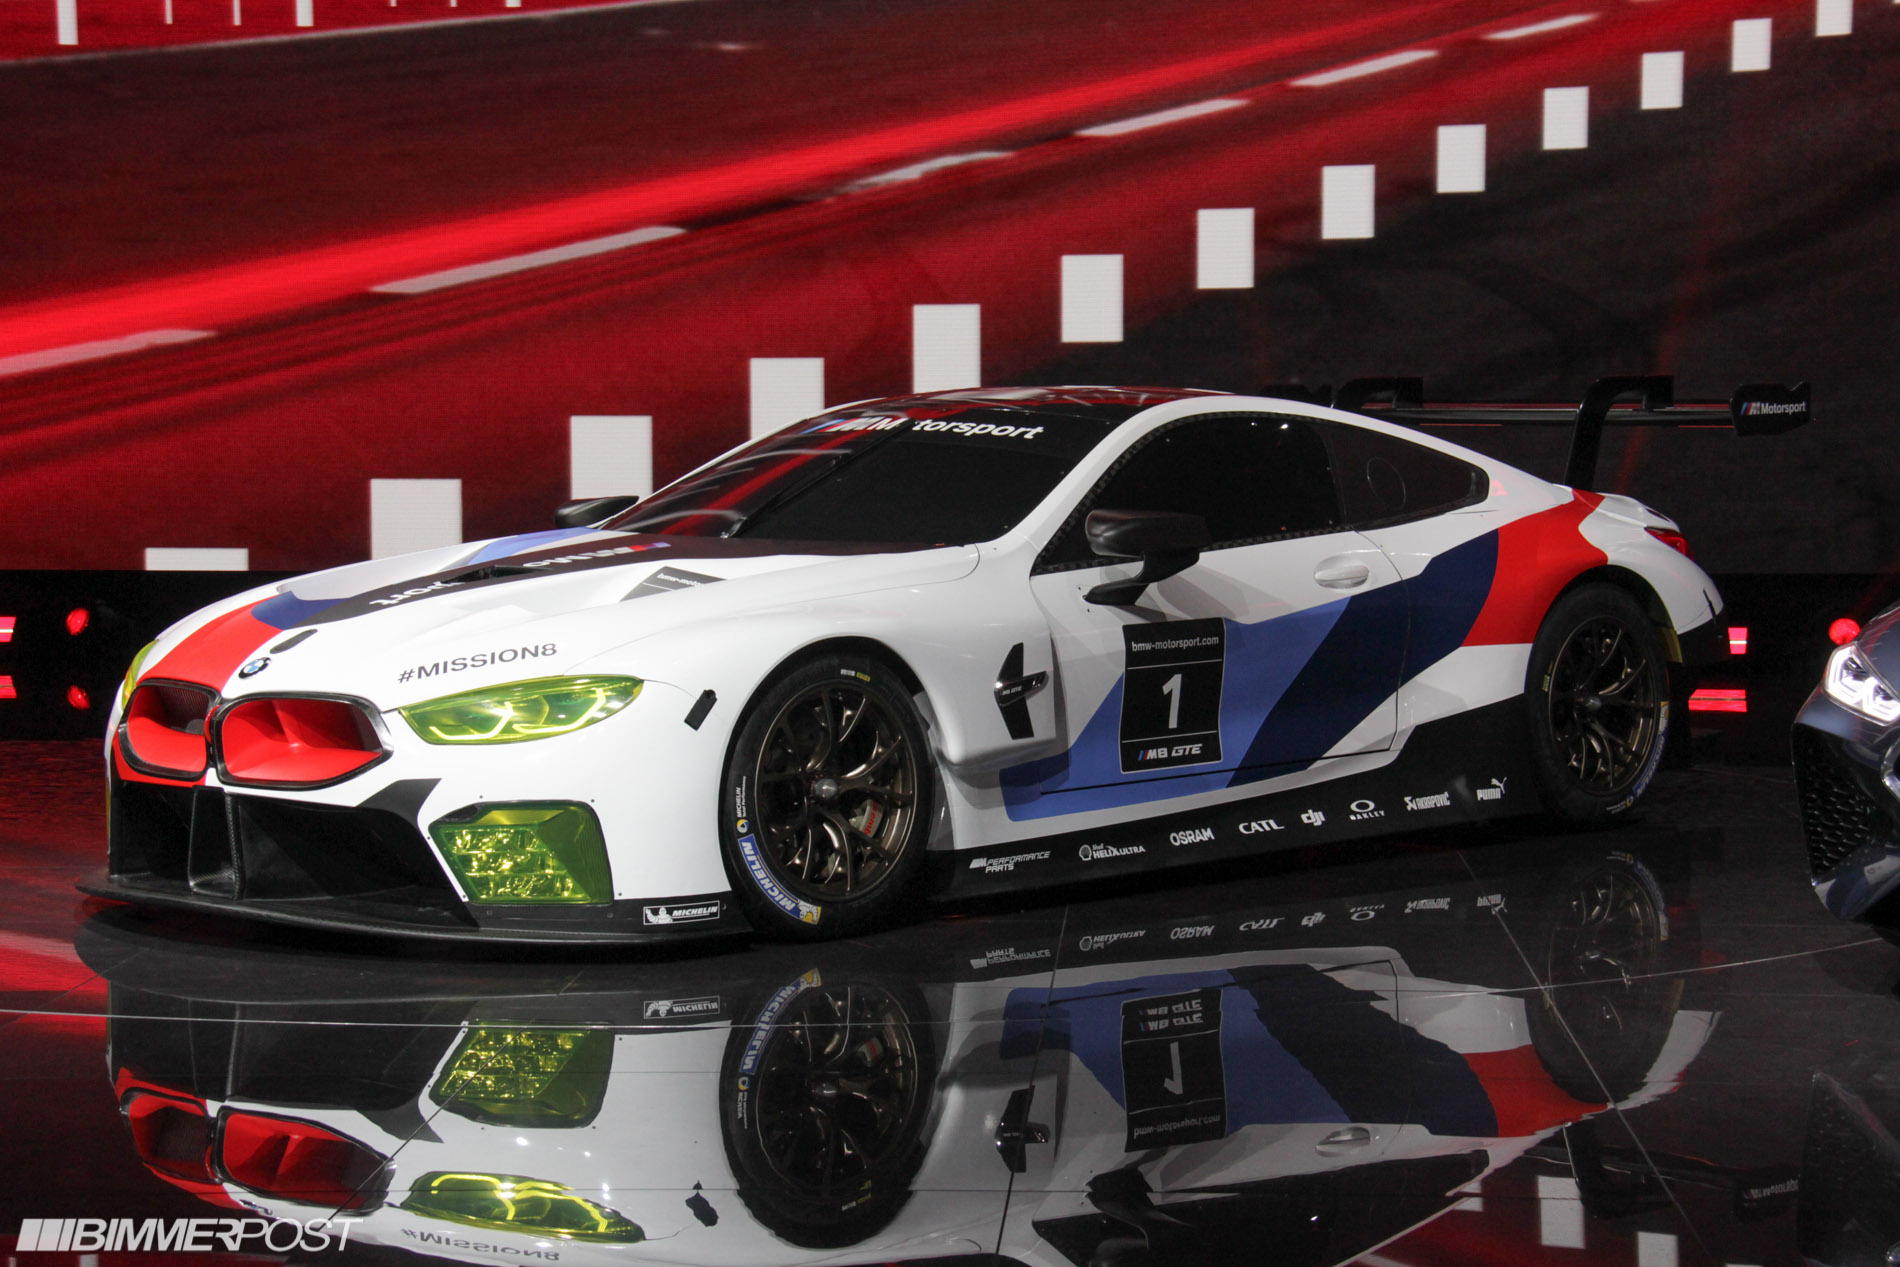 bmw m8 gte world debut updated with pics from frankfurt iaa. Black Bedroom Furniture Sets. Home Design Ideas